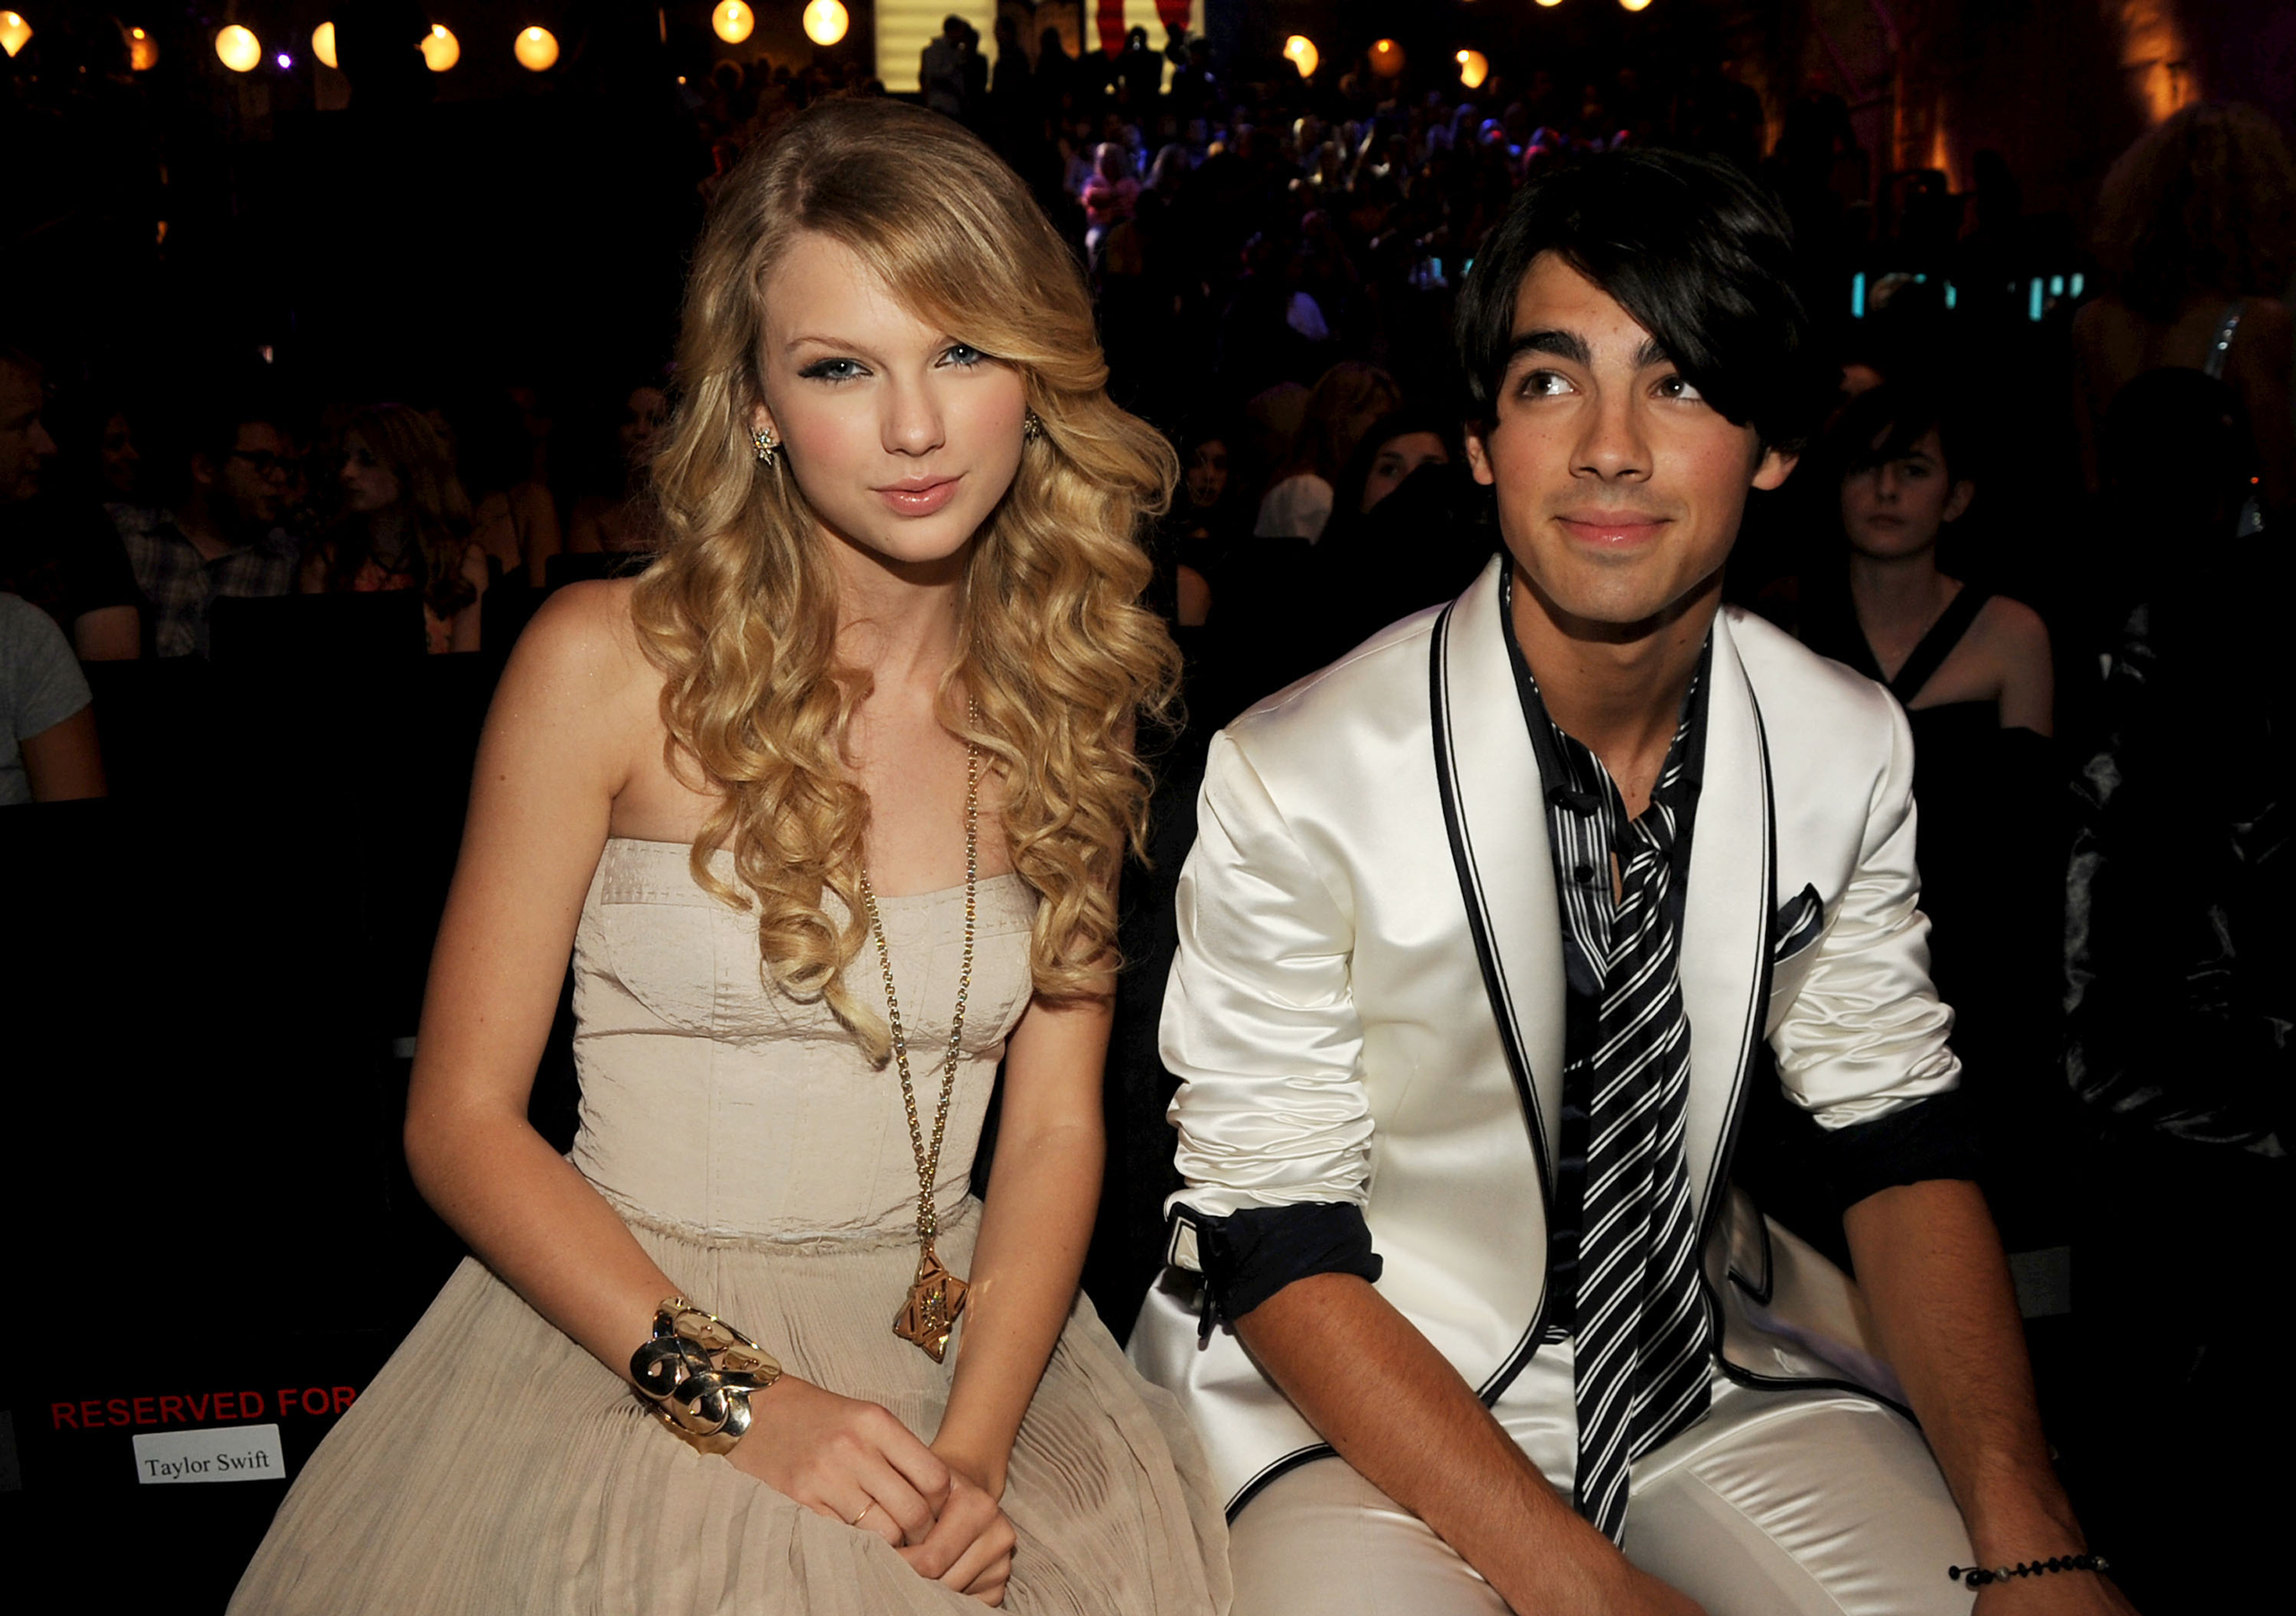 Singers Taylor Swift and Joe Jonas at the 2008 MTV Video Music Awards at Paramount Pictures Studios in Los Angeles on Sept. 7, 2008.